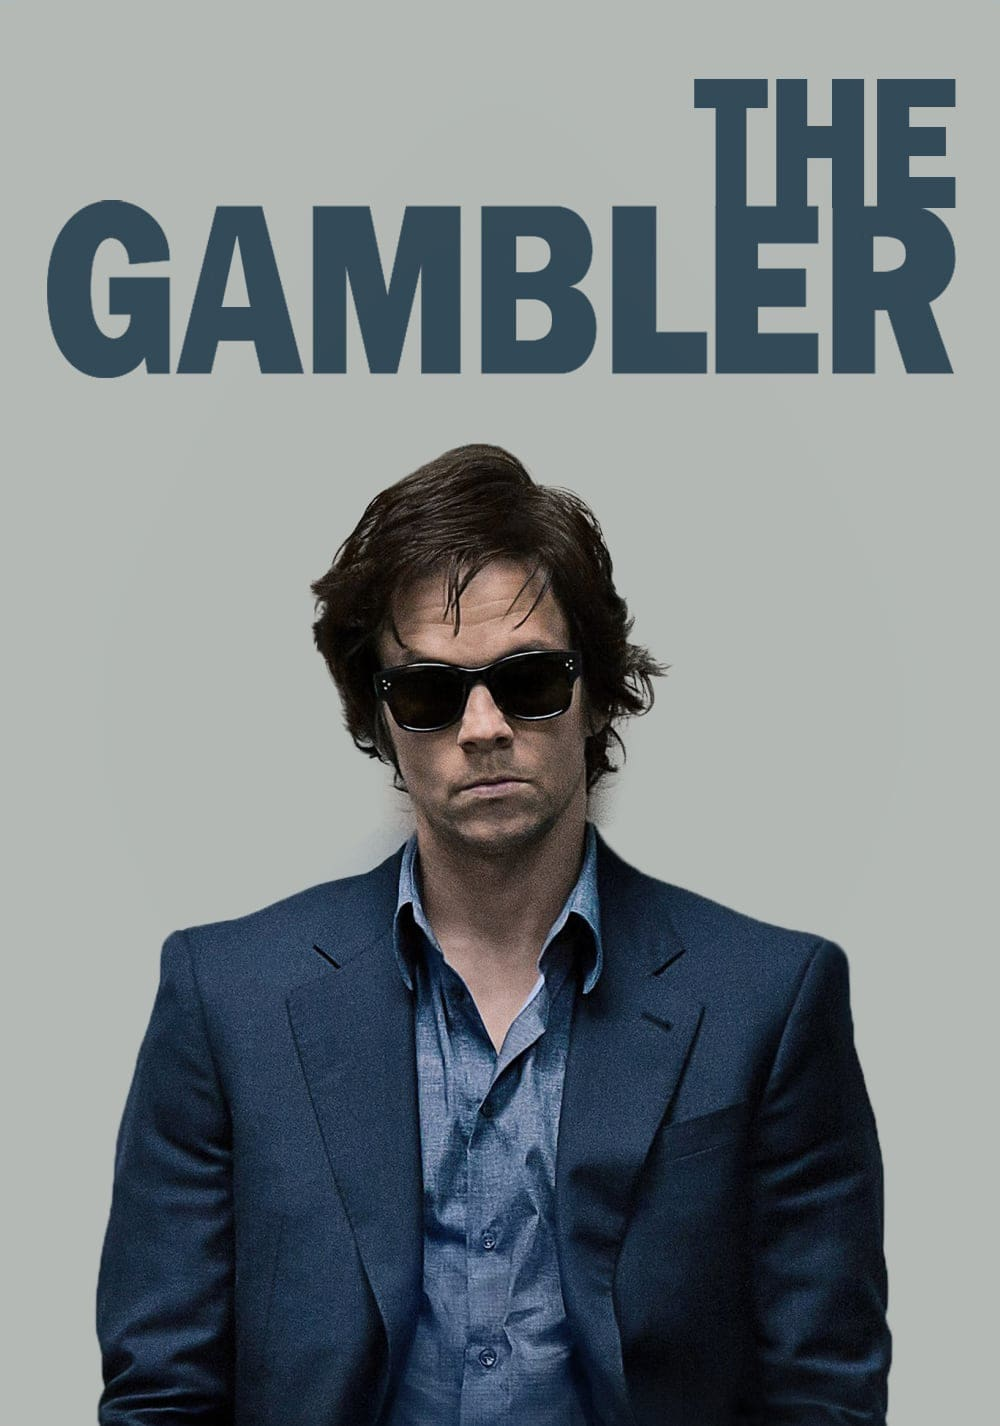 The Gambler Movie Streaming Online Watch on Tubi, iTunes